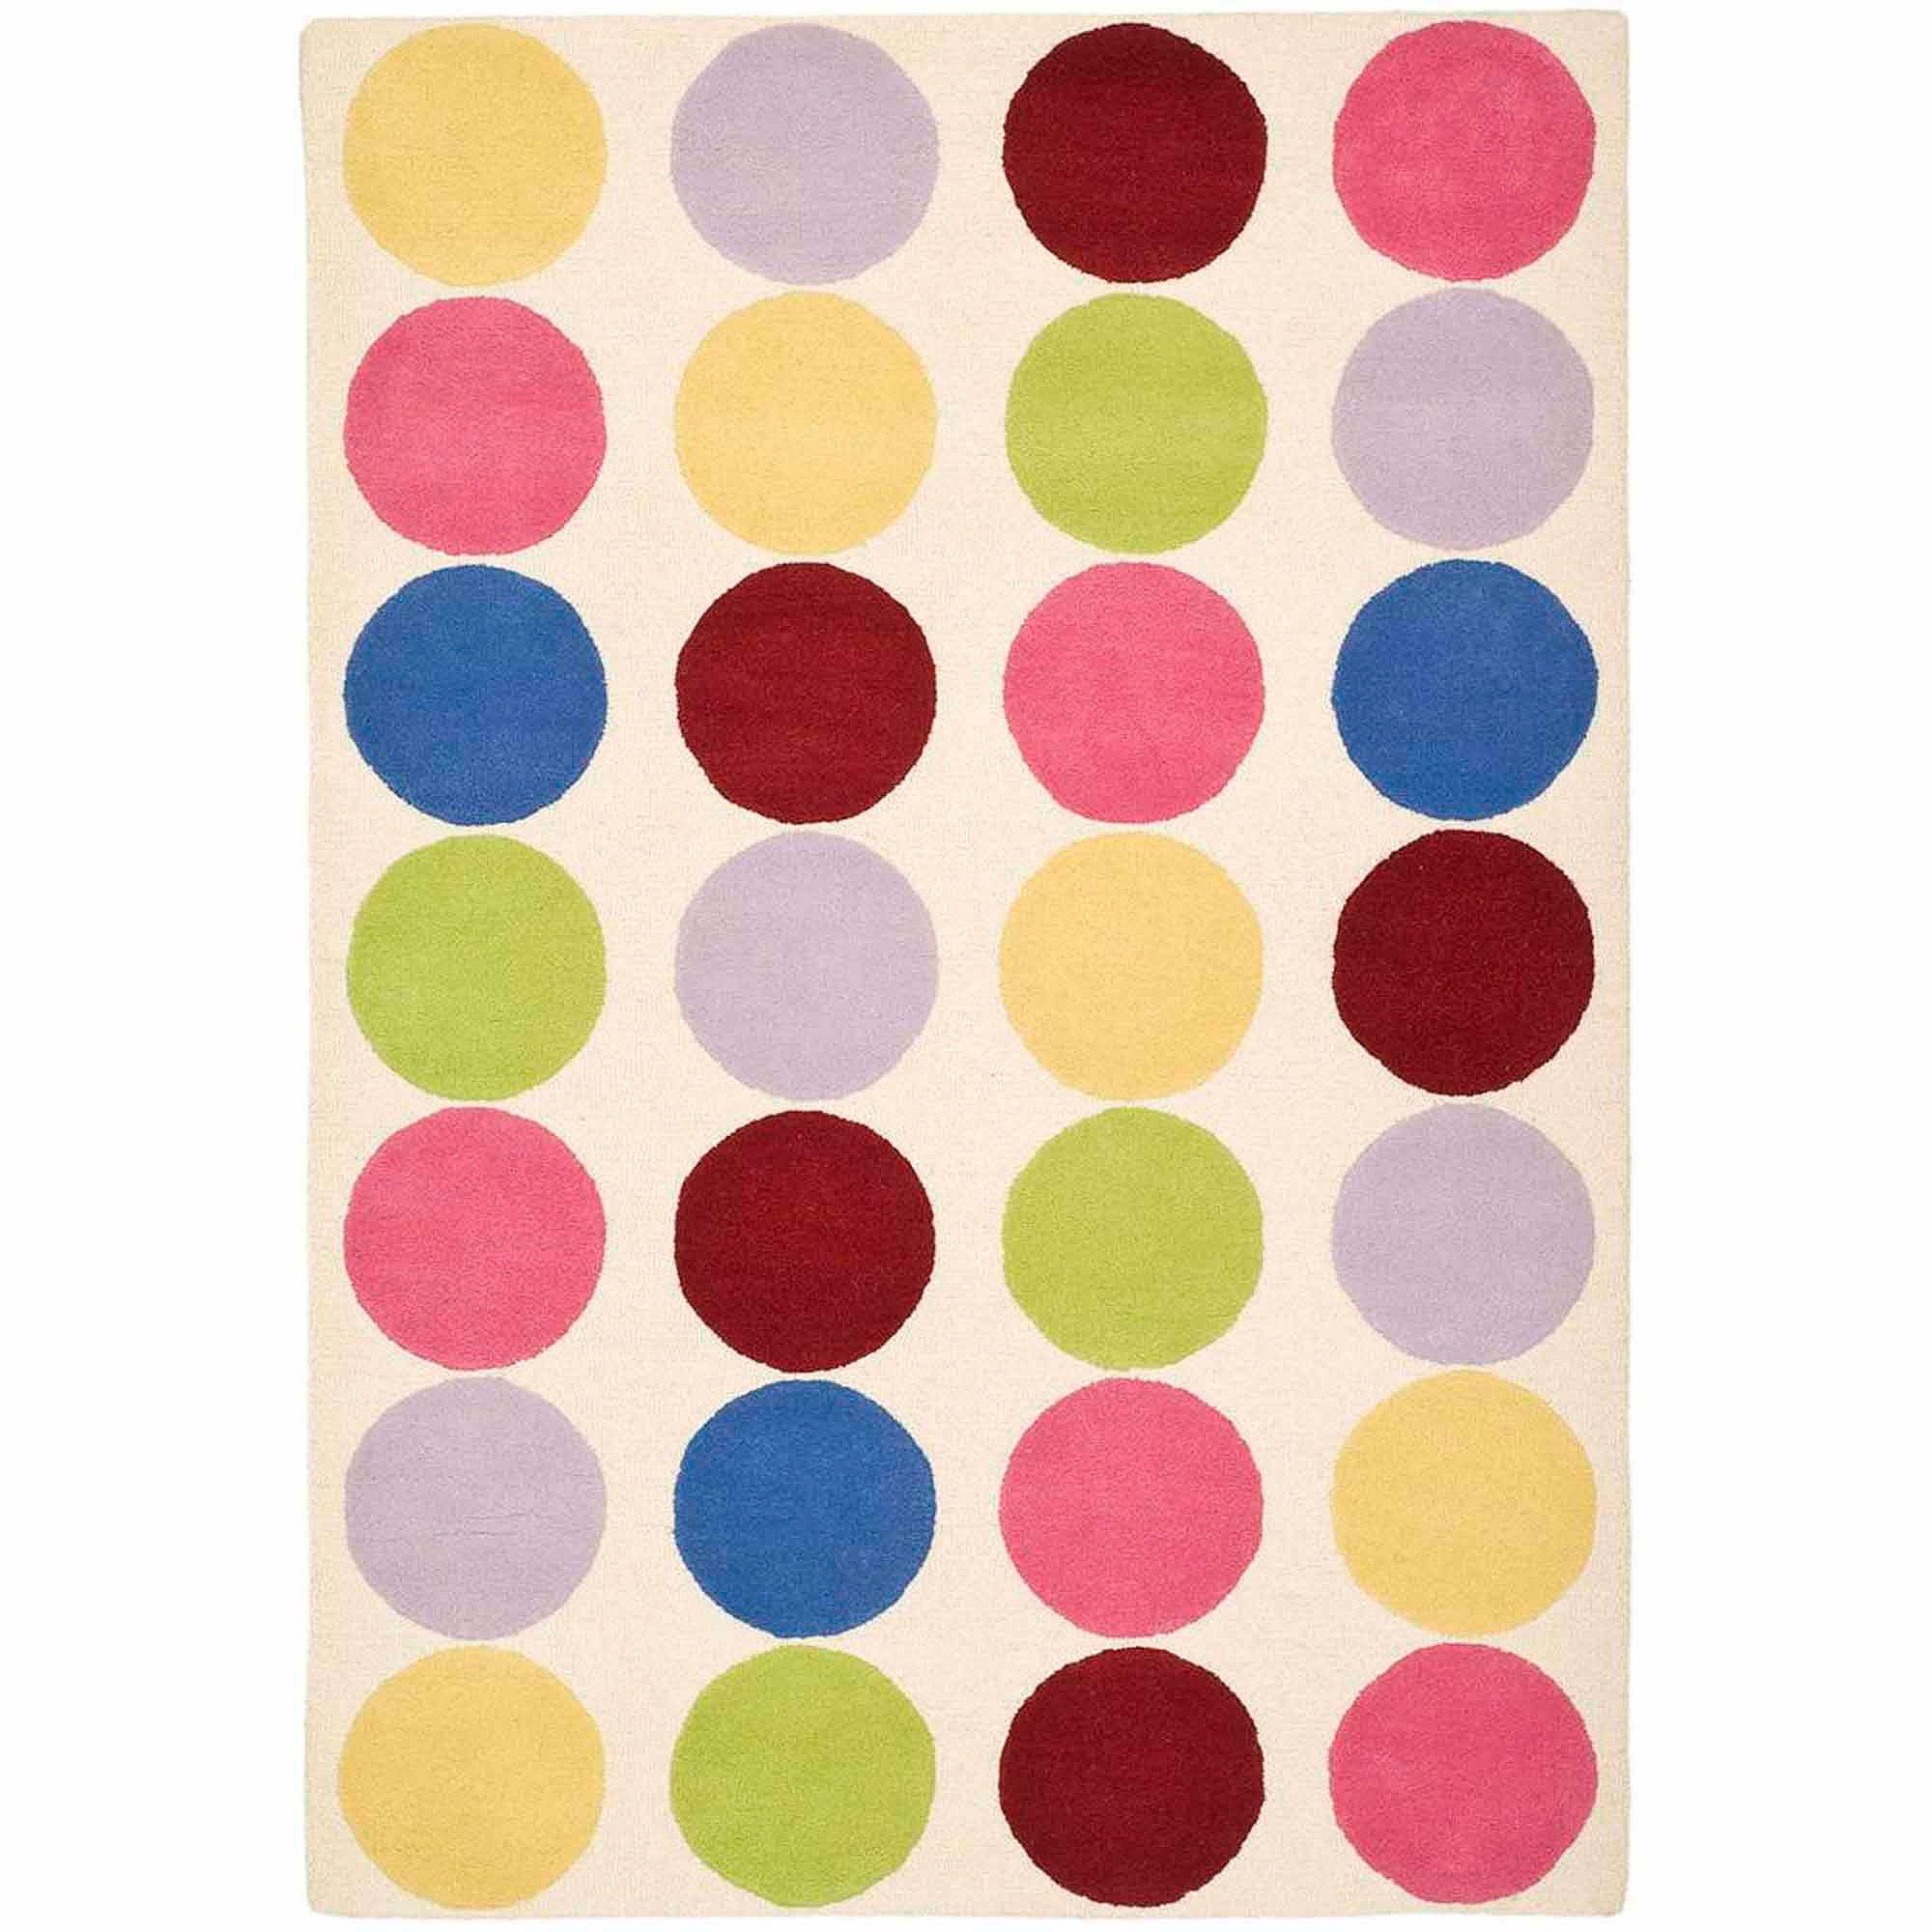 Safavieh Kids Webster Hand-Tufted Area Rug, Ivory/Multi